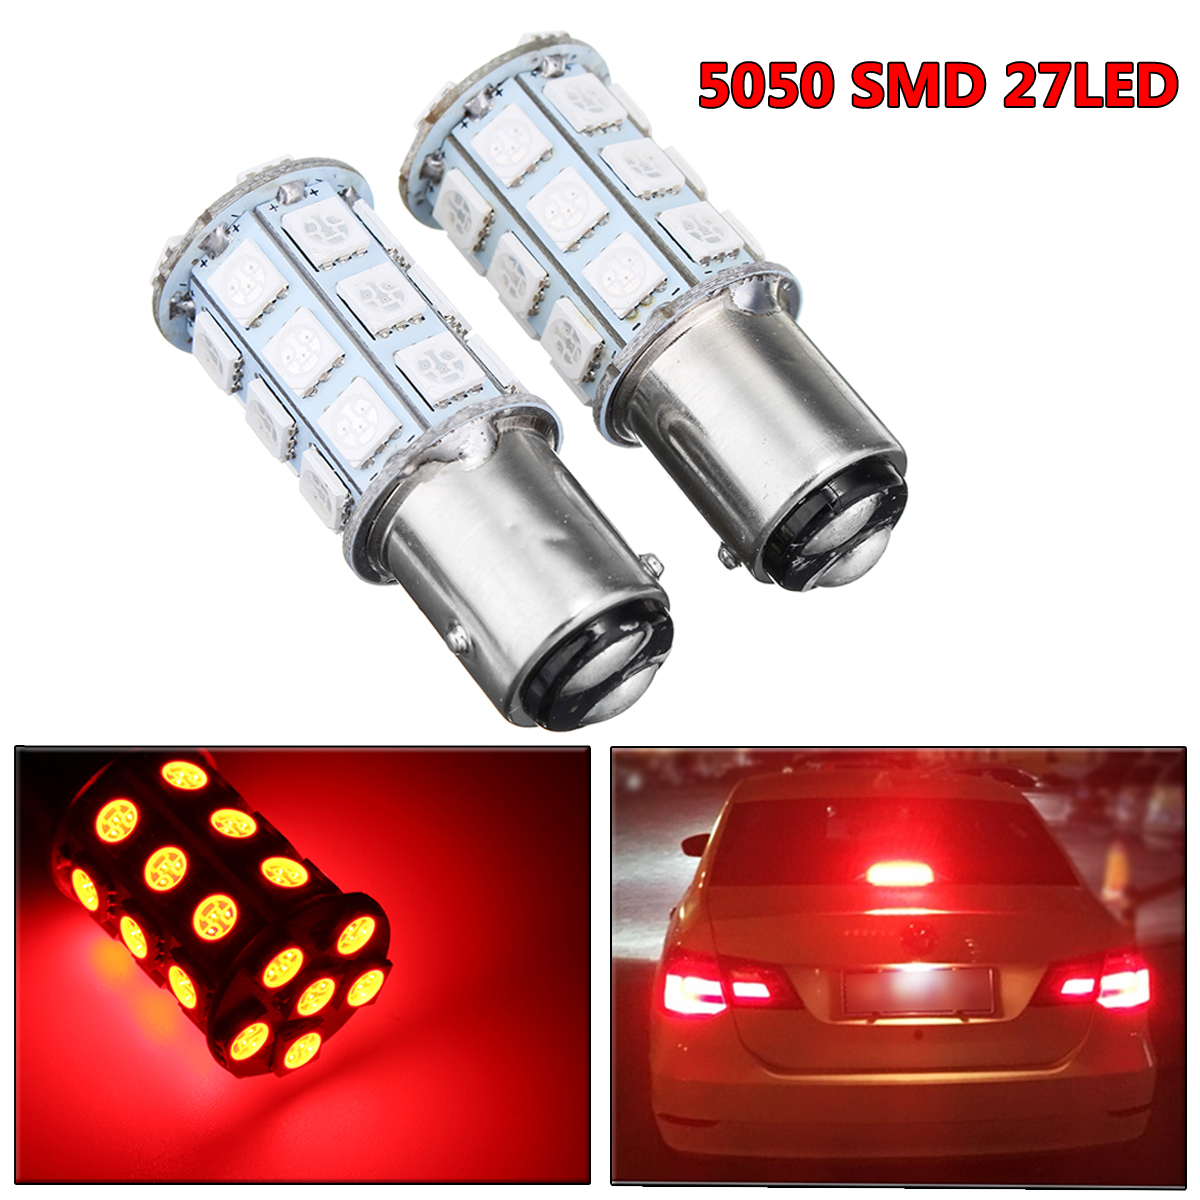 2pcs 12V BAW15D 5050SMD 27LED Car Red Brake Lights Bulbs Universal Reverse Stop Tail Lamp Bulbs